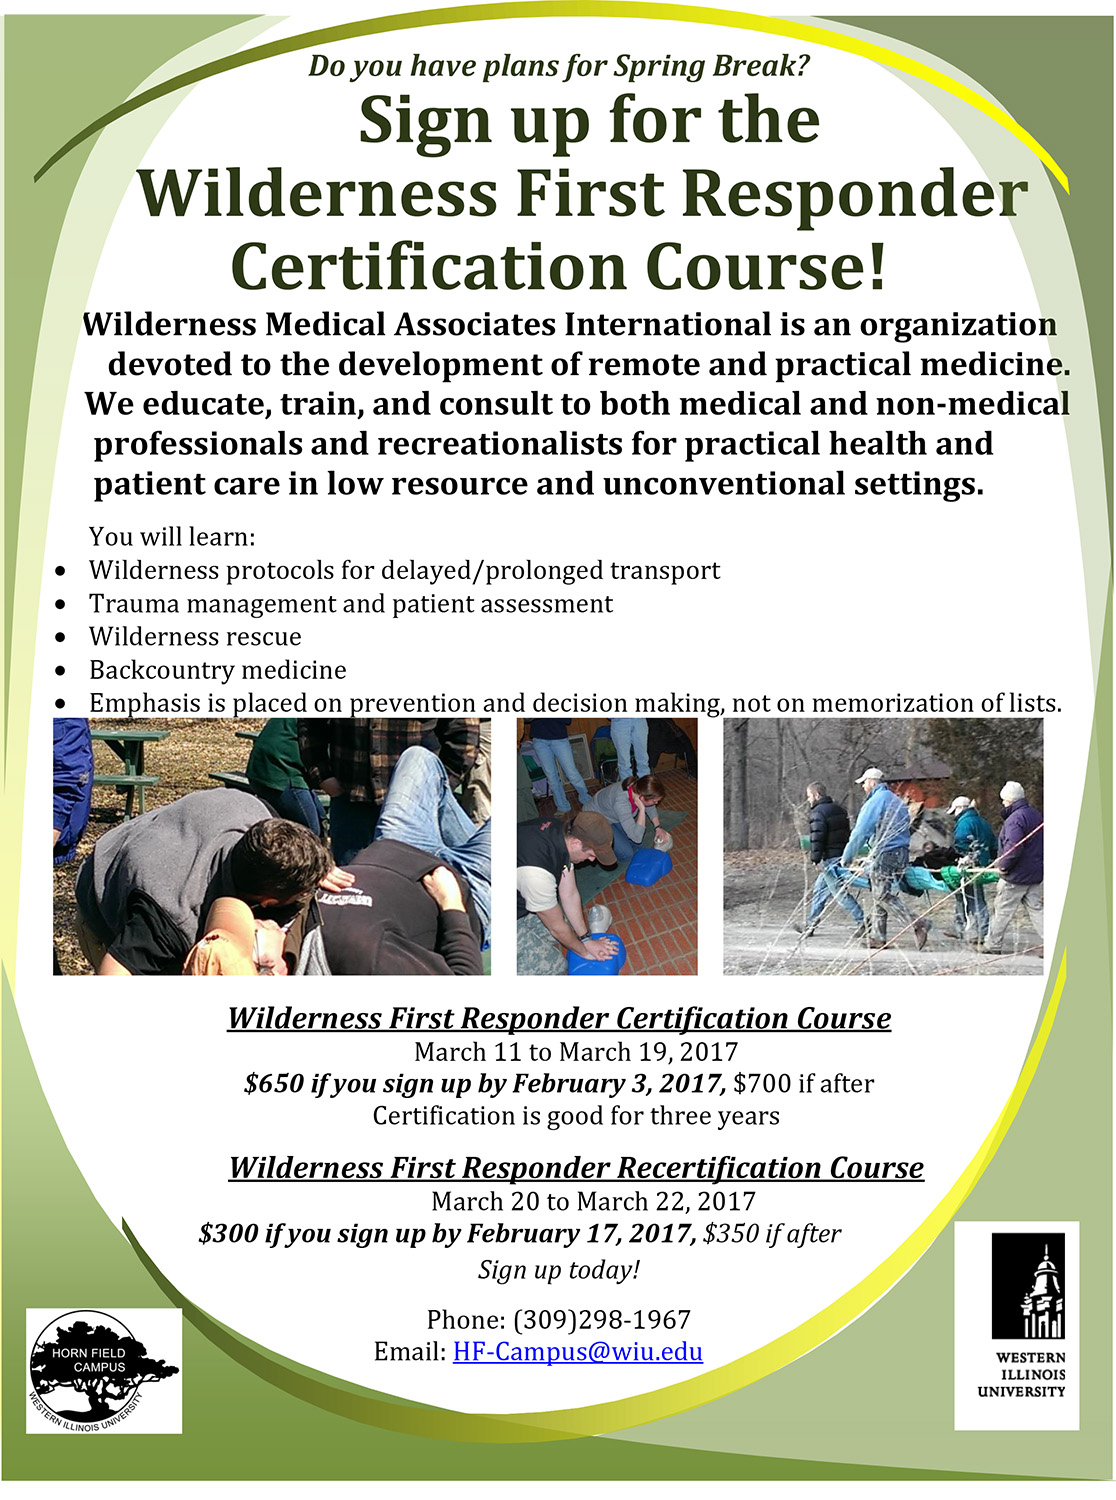 Wilderness First Responder Courses Scheduled For March At Horn Field